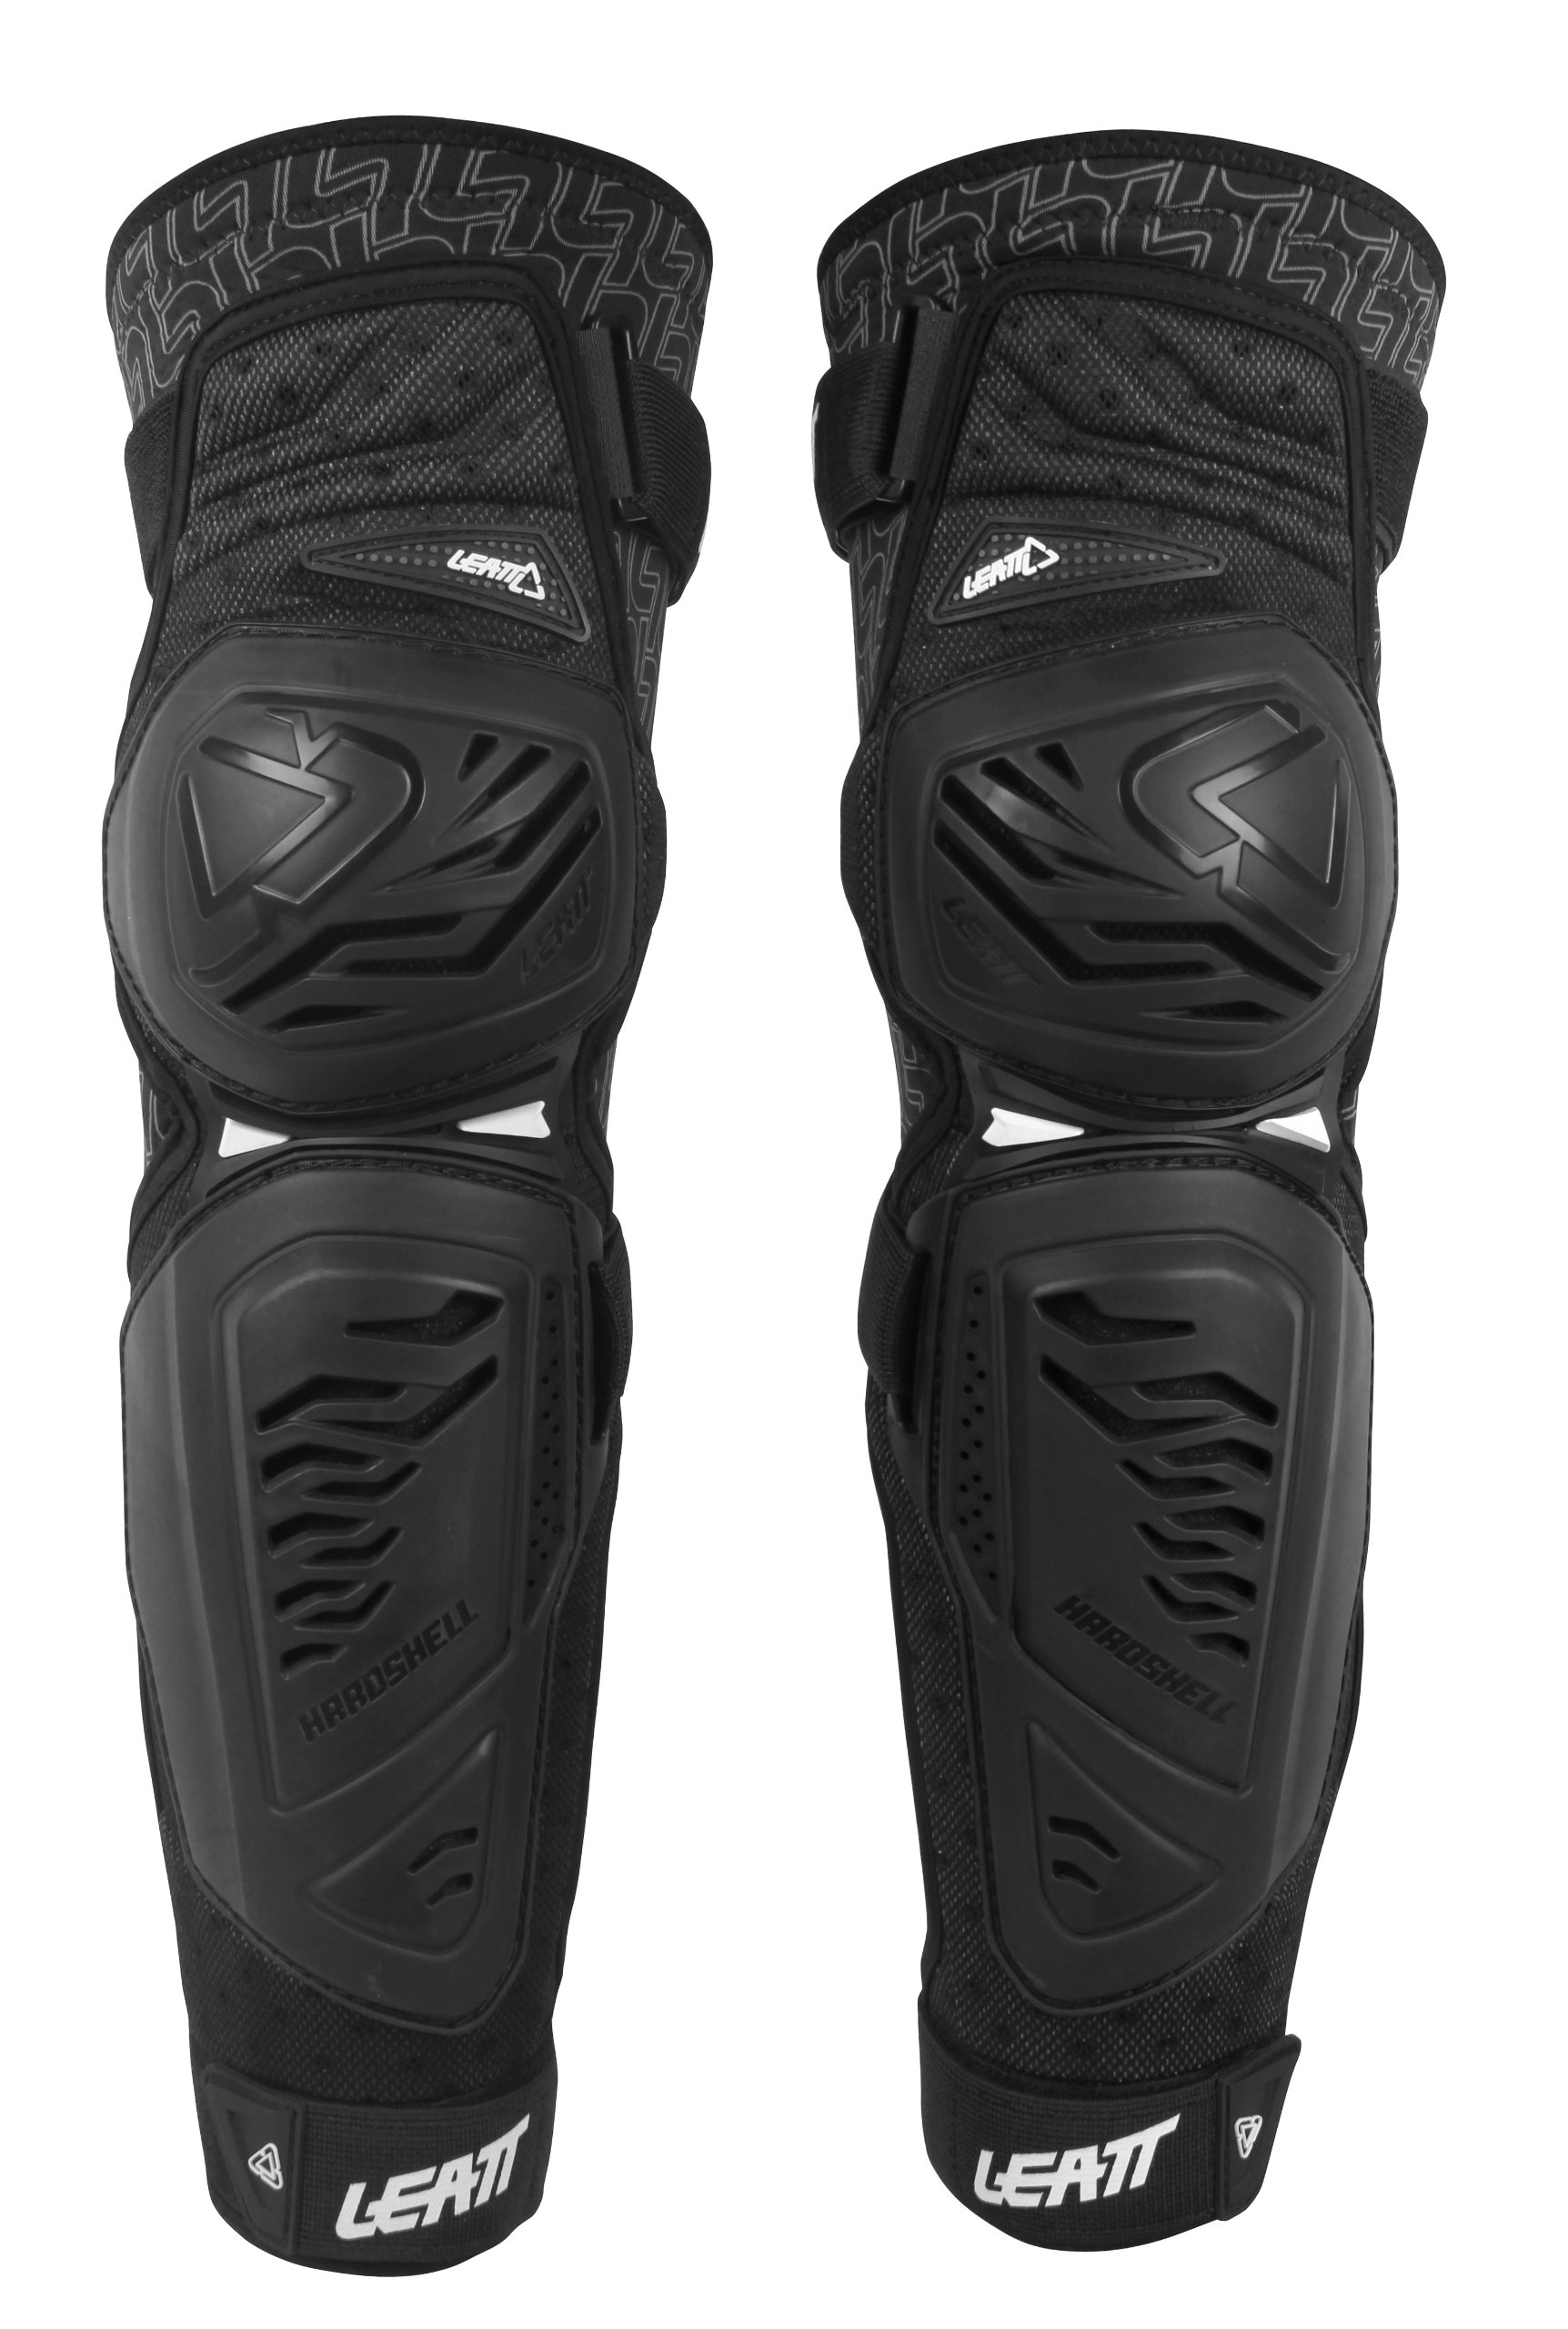 Leatt 5014210042 EXT Knee and Shin Guard (Black, Large/X-Large)